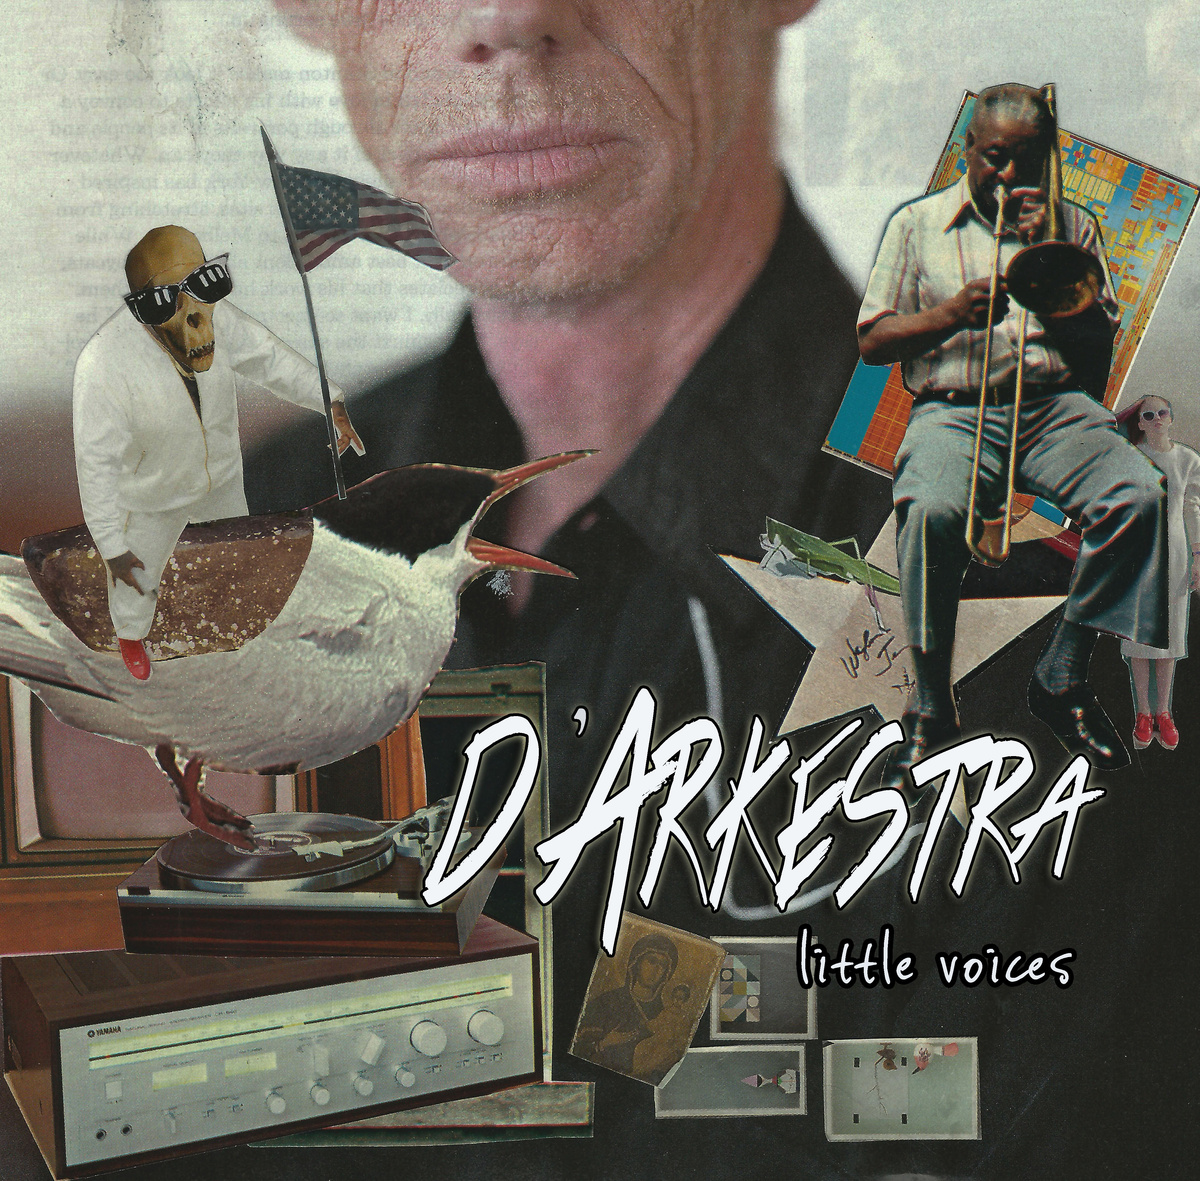 D'Arkestra Little Voices art.jpg